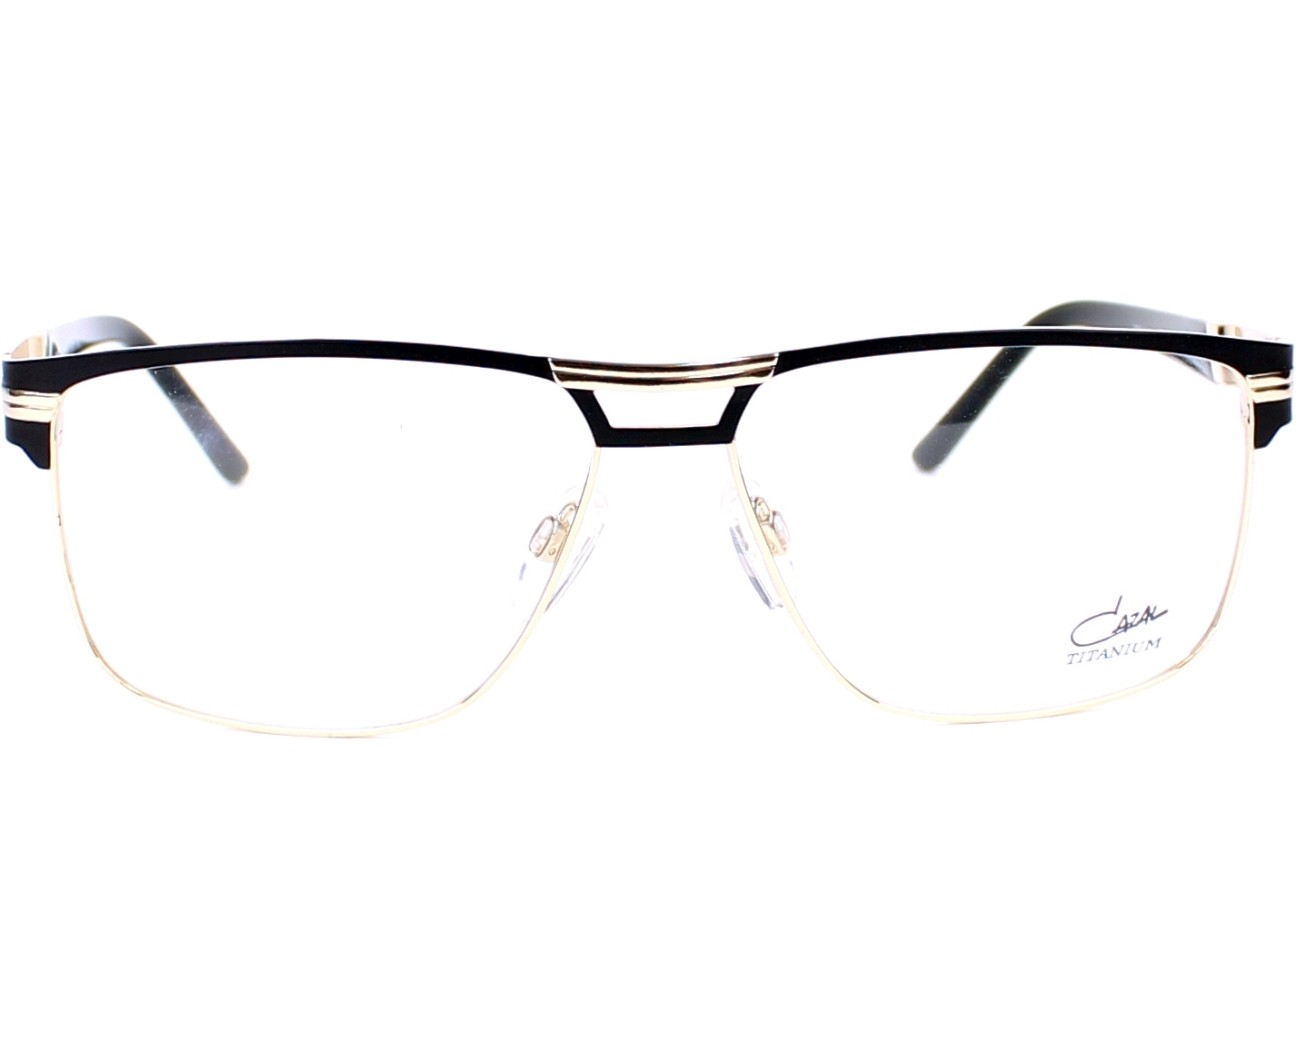 b70ad85e0d eyeglasses Cazal 7054 001 - Black Gold front view